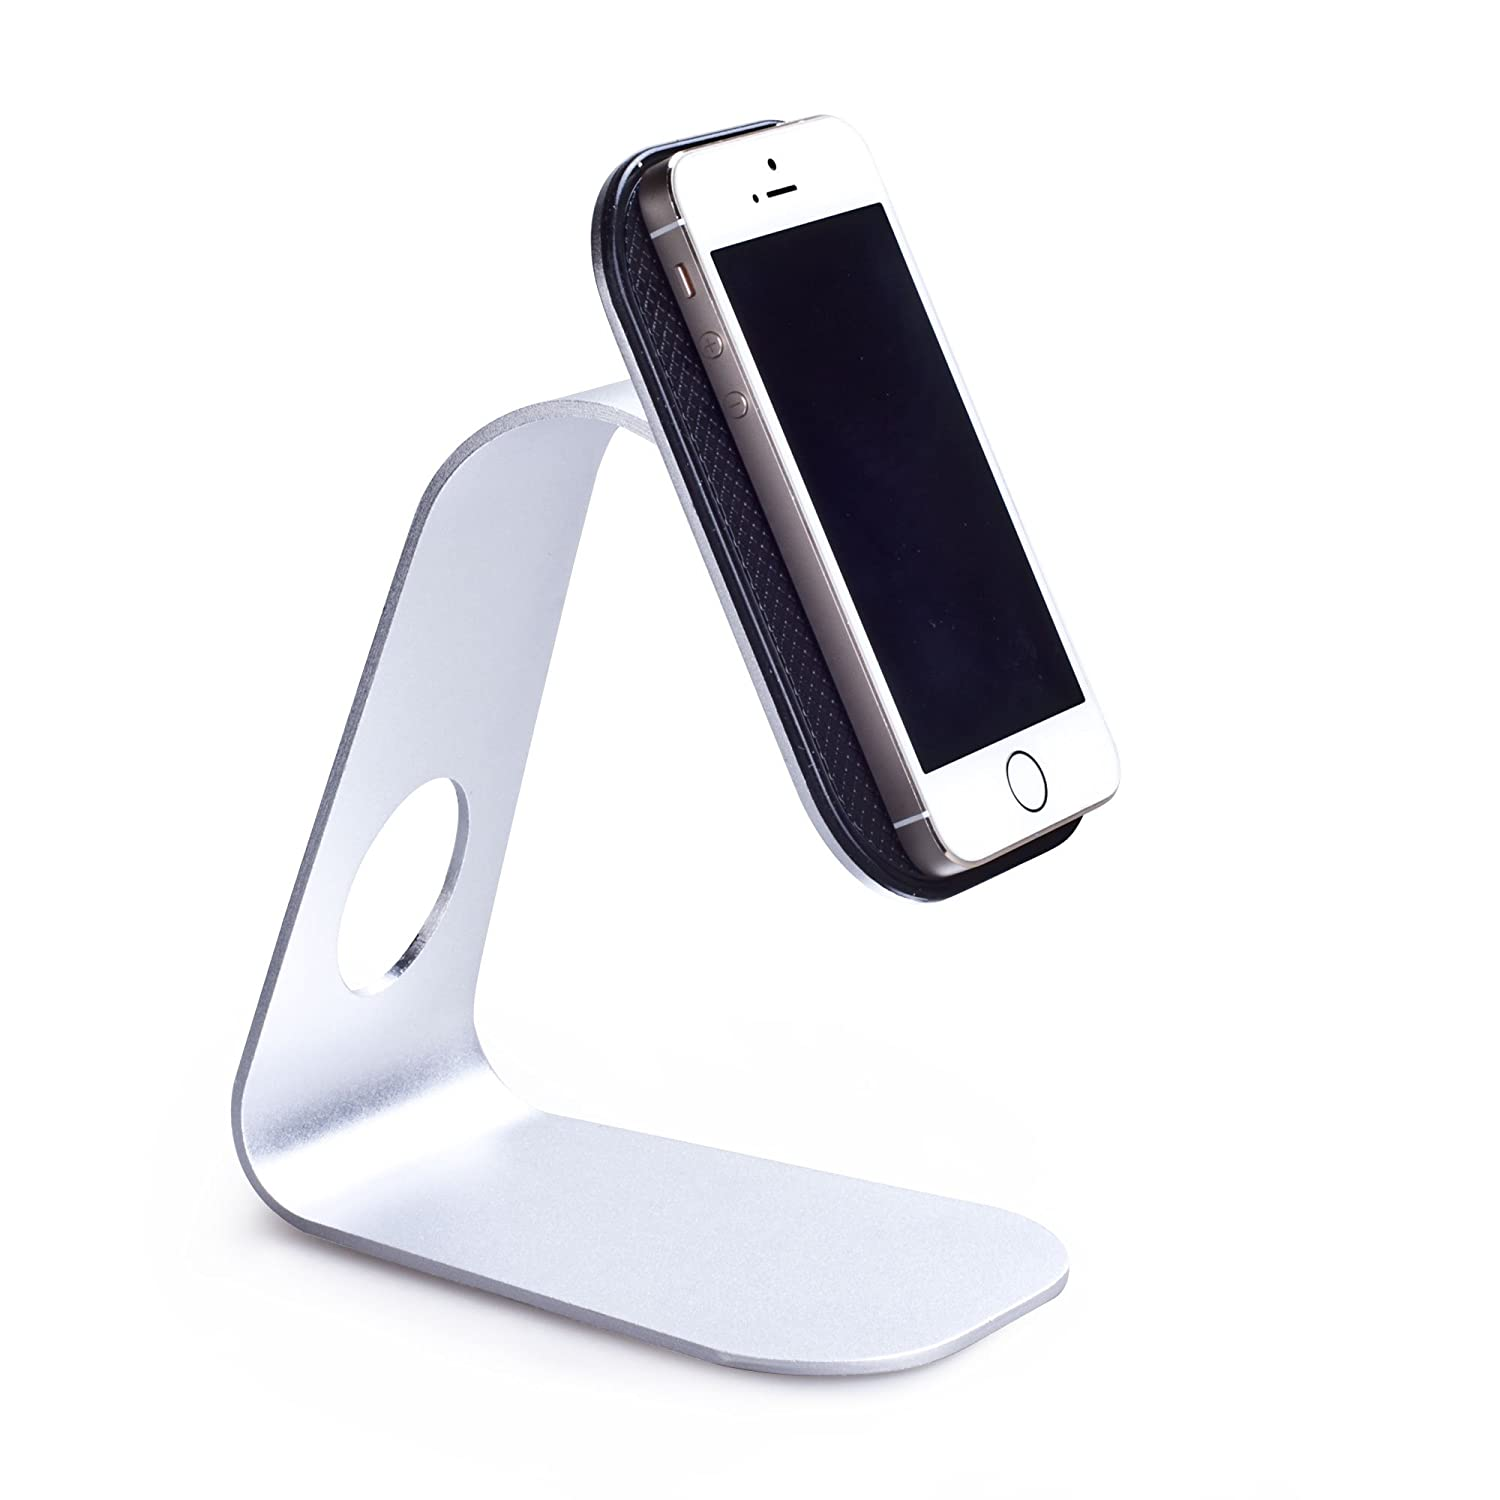 AmoVee Portable Nano Aluminum Desktop Phone Stand Smartphone Holder w/ Micro-Suction Cell Phone Holder Stand Mount Compatible w/ Apple iPhone 6 Plus, 5s; Samsung Galaxy Note 4, Galaxy S5, Galaxy S4; HTC One M8; Nexus 6, Nexus 9; LG G3; iPad Air; iPod and Other Smartphones, Tablet Pcs (Silver)